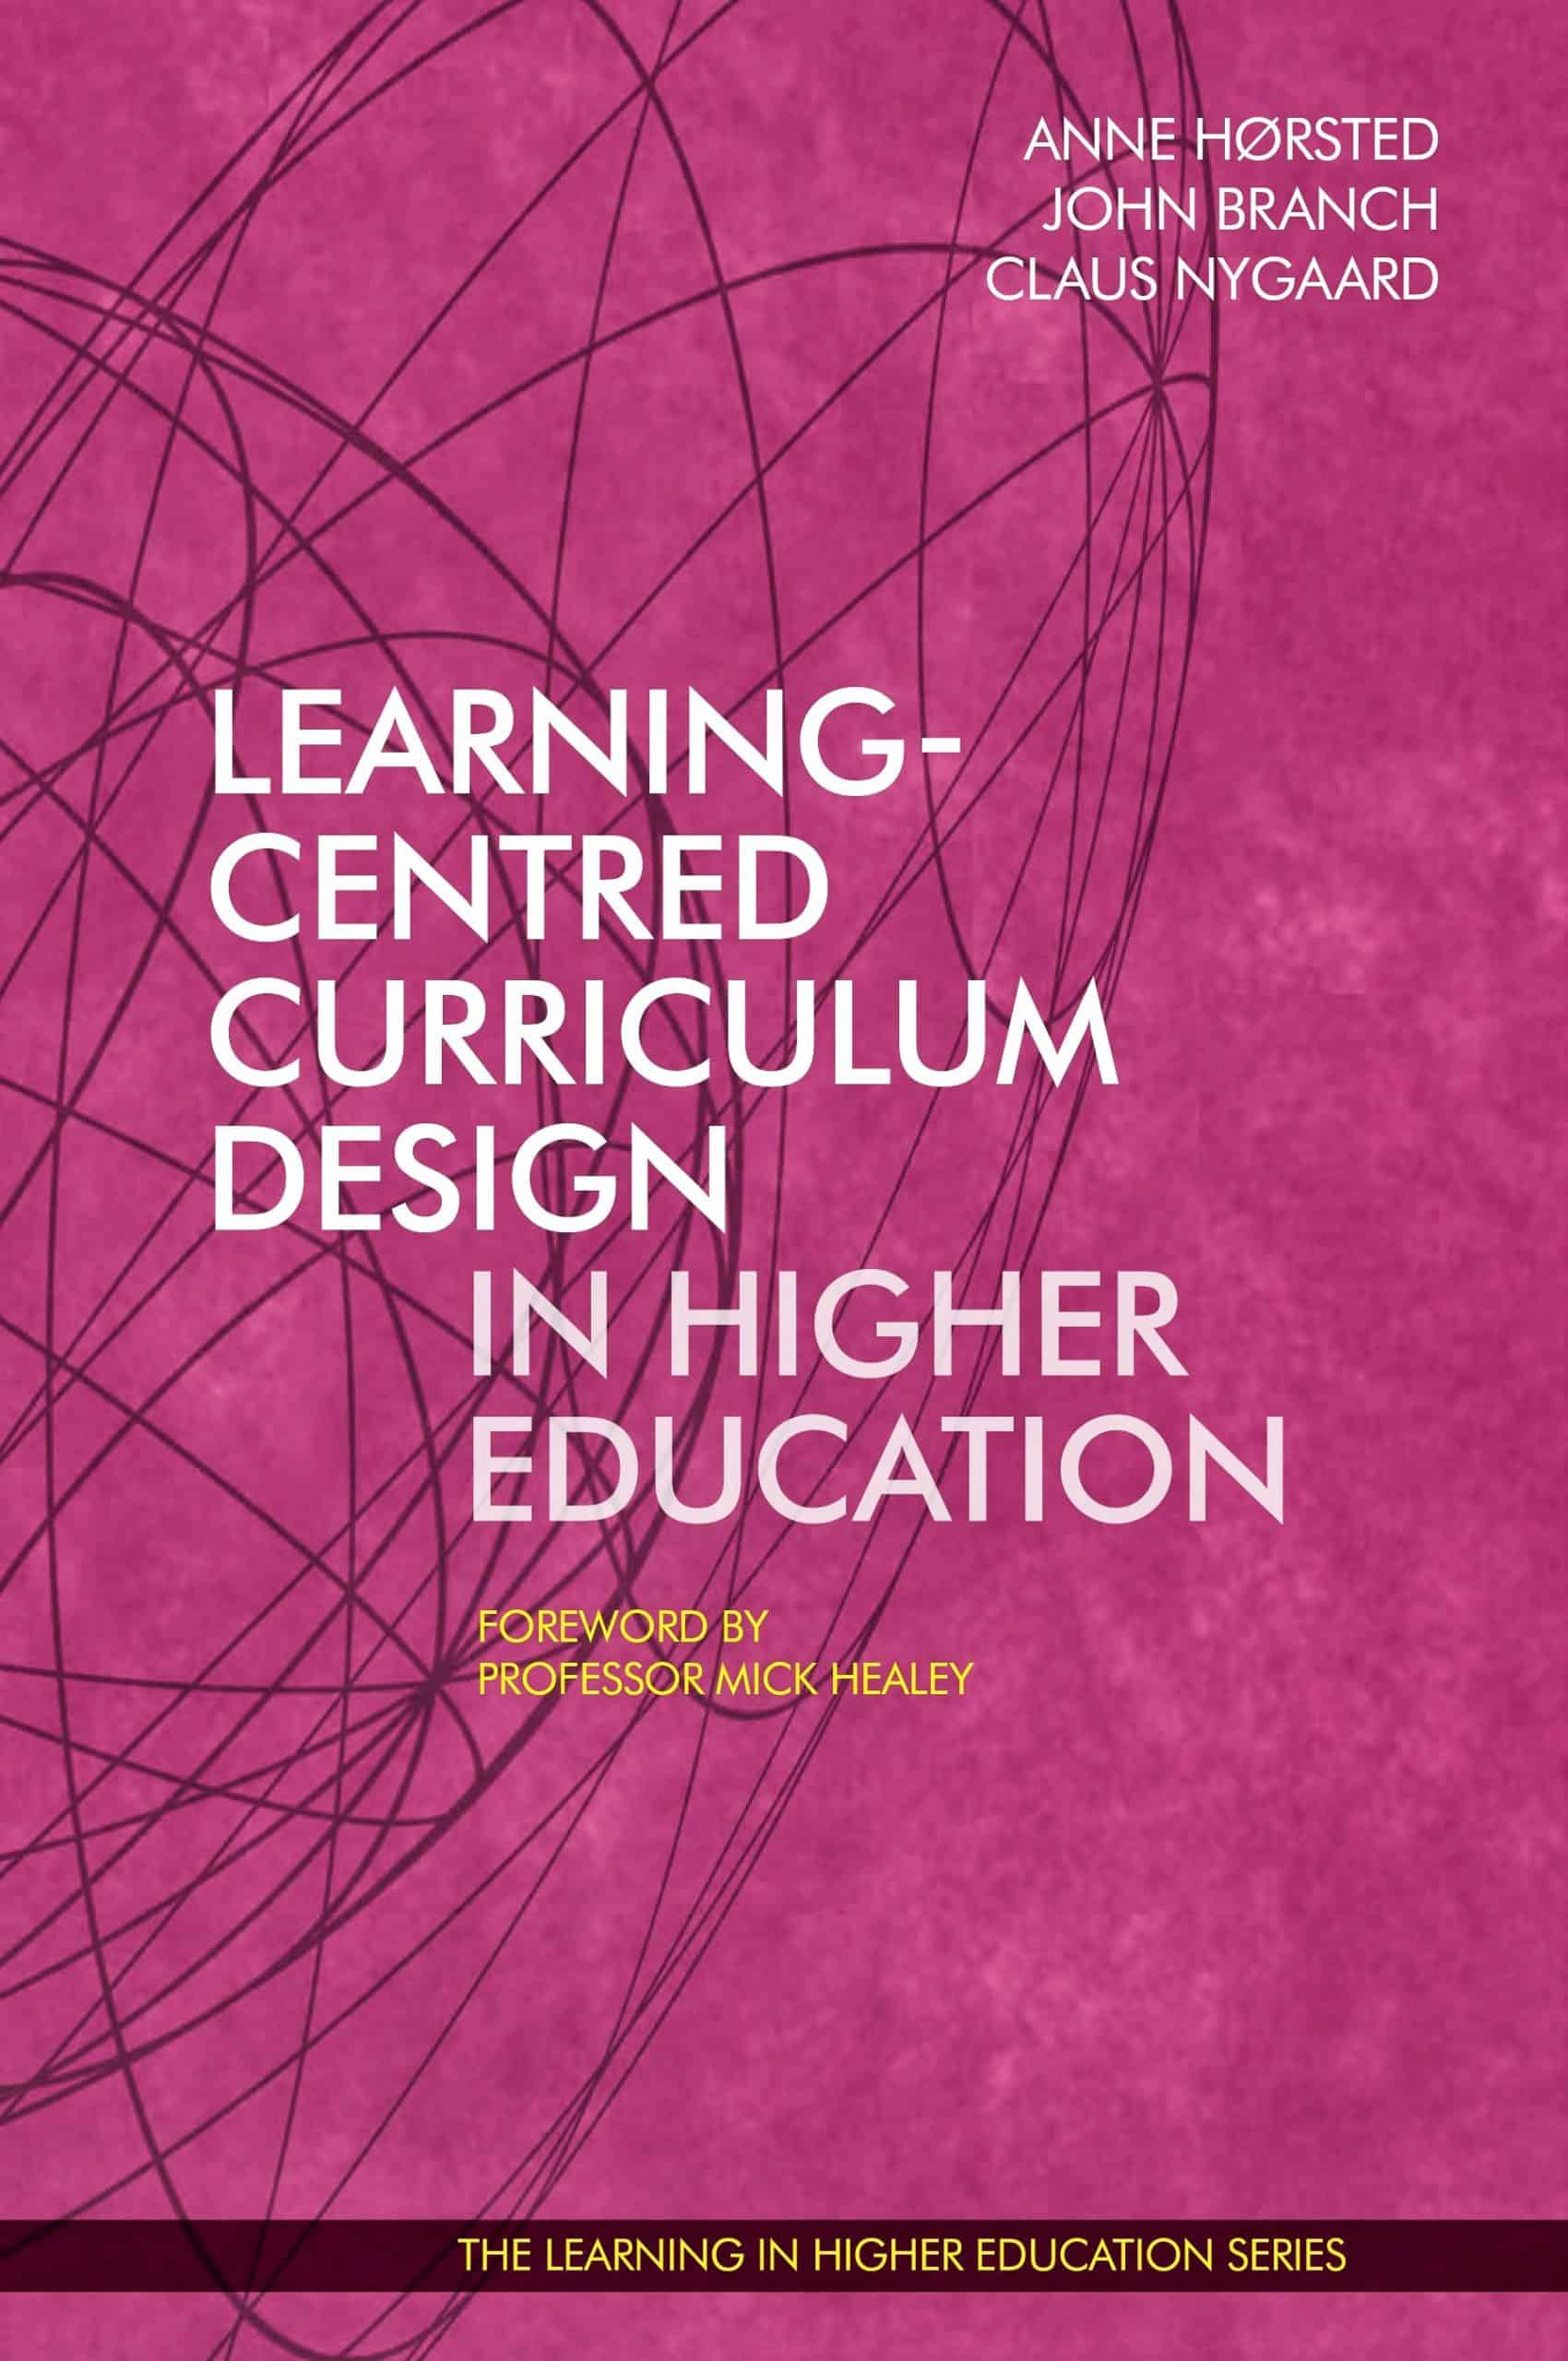 Learning Centred Curriculum Design in Higher Education (2017) - Anne Hørsted - John Branch - Claus Nygaard - Mick Healey - Libri Publishing Ltd - Institute for Learning in Higher Education